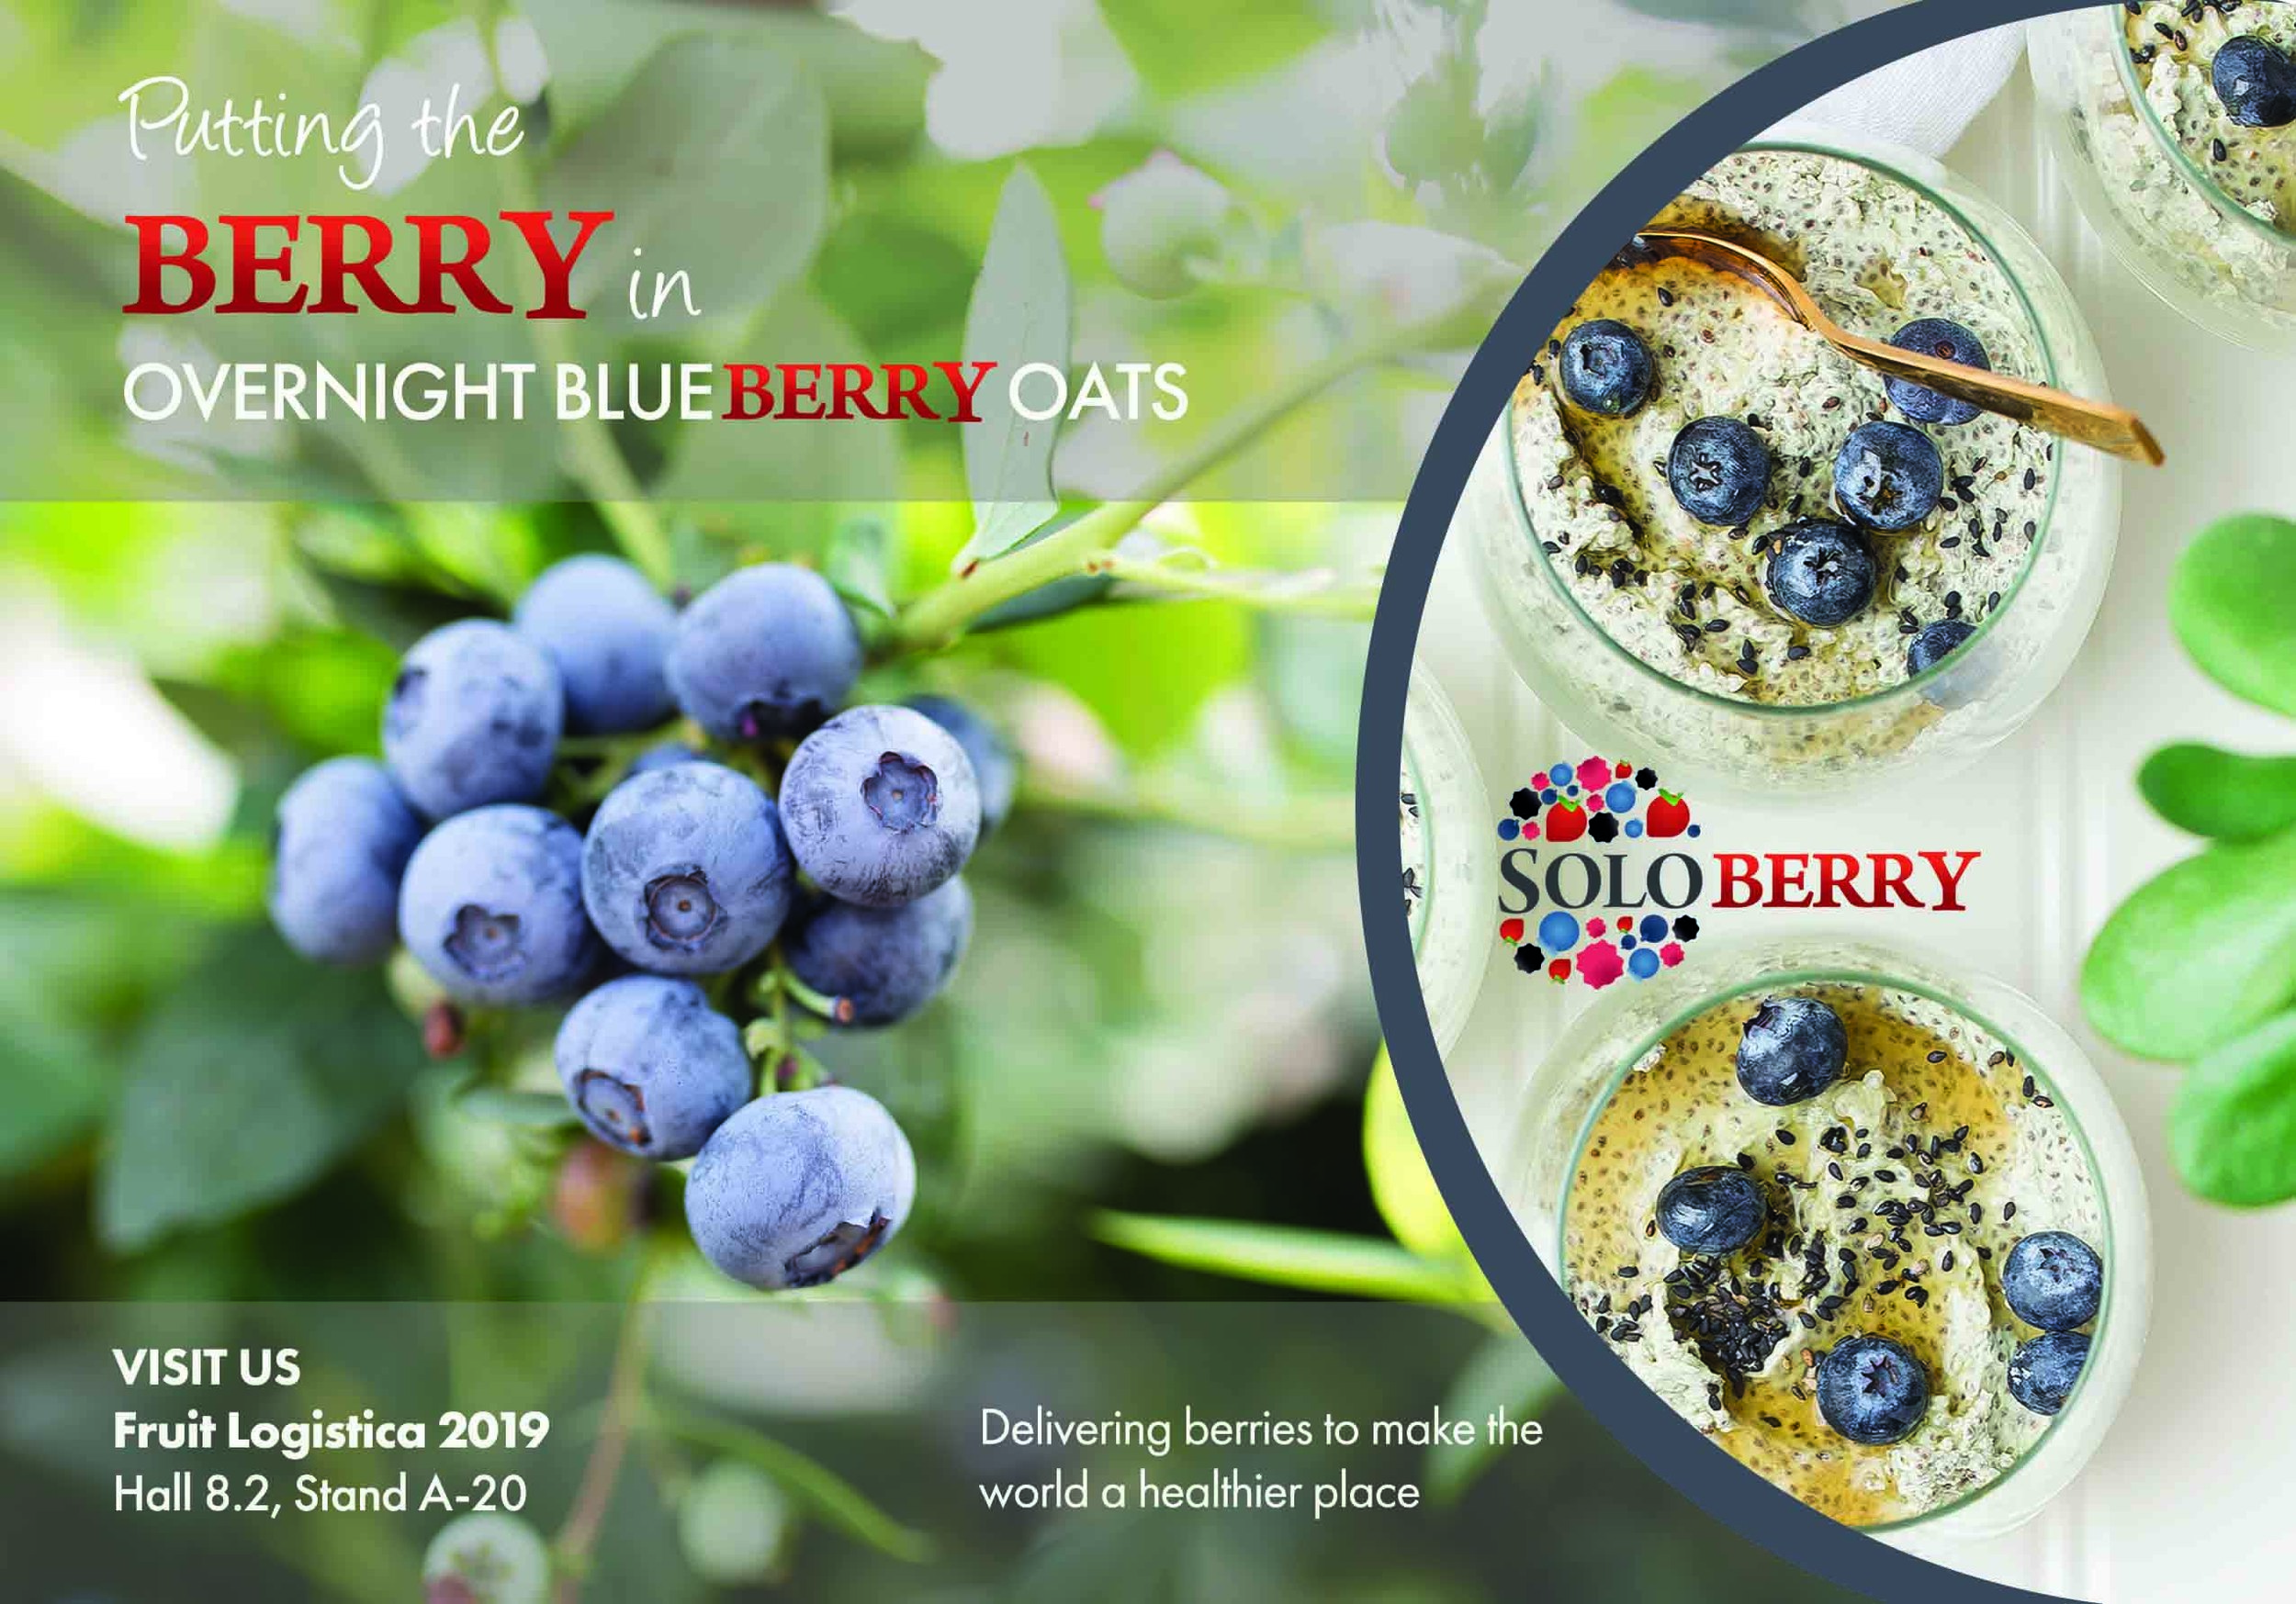 Soloberry will be attending Fruit Logistica 2019 this February in Berlin.